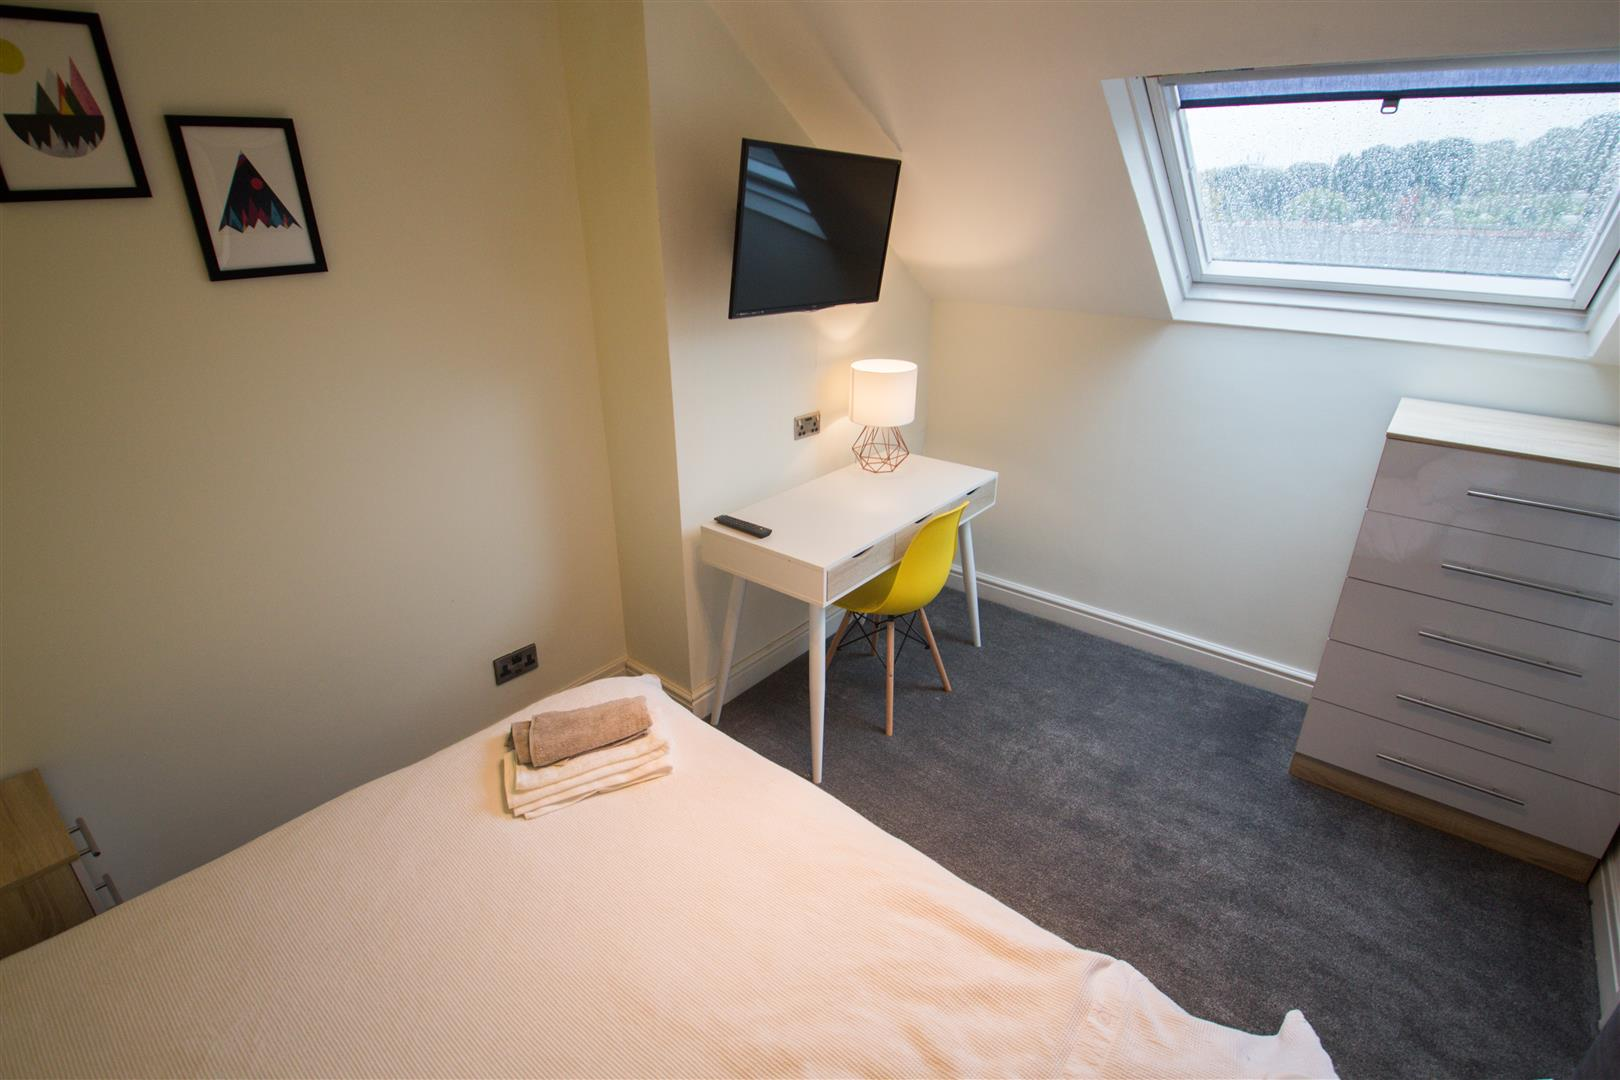 Room 5, 75 Headingley Avenue, Leeds, LS6 3ER Image